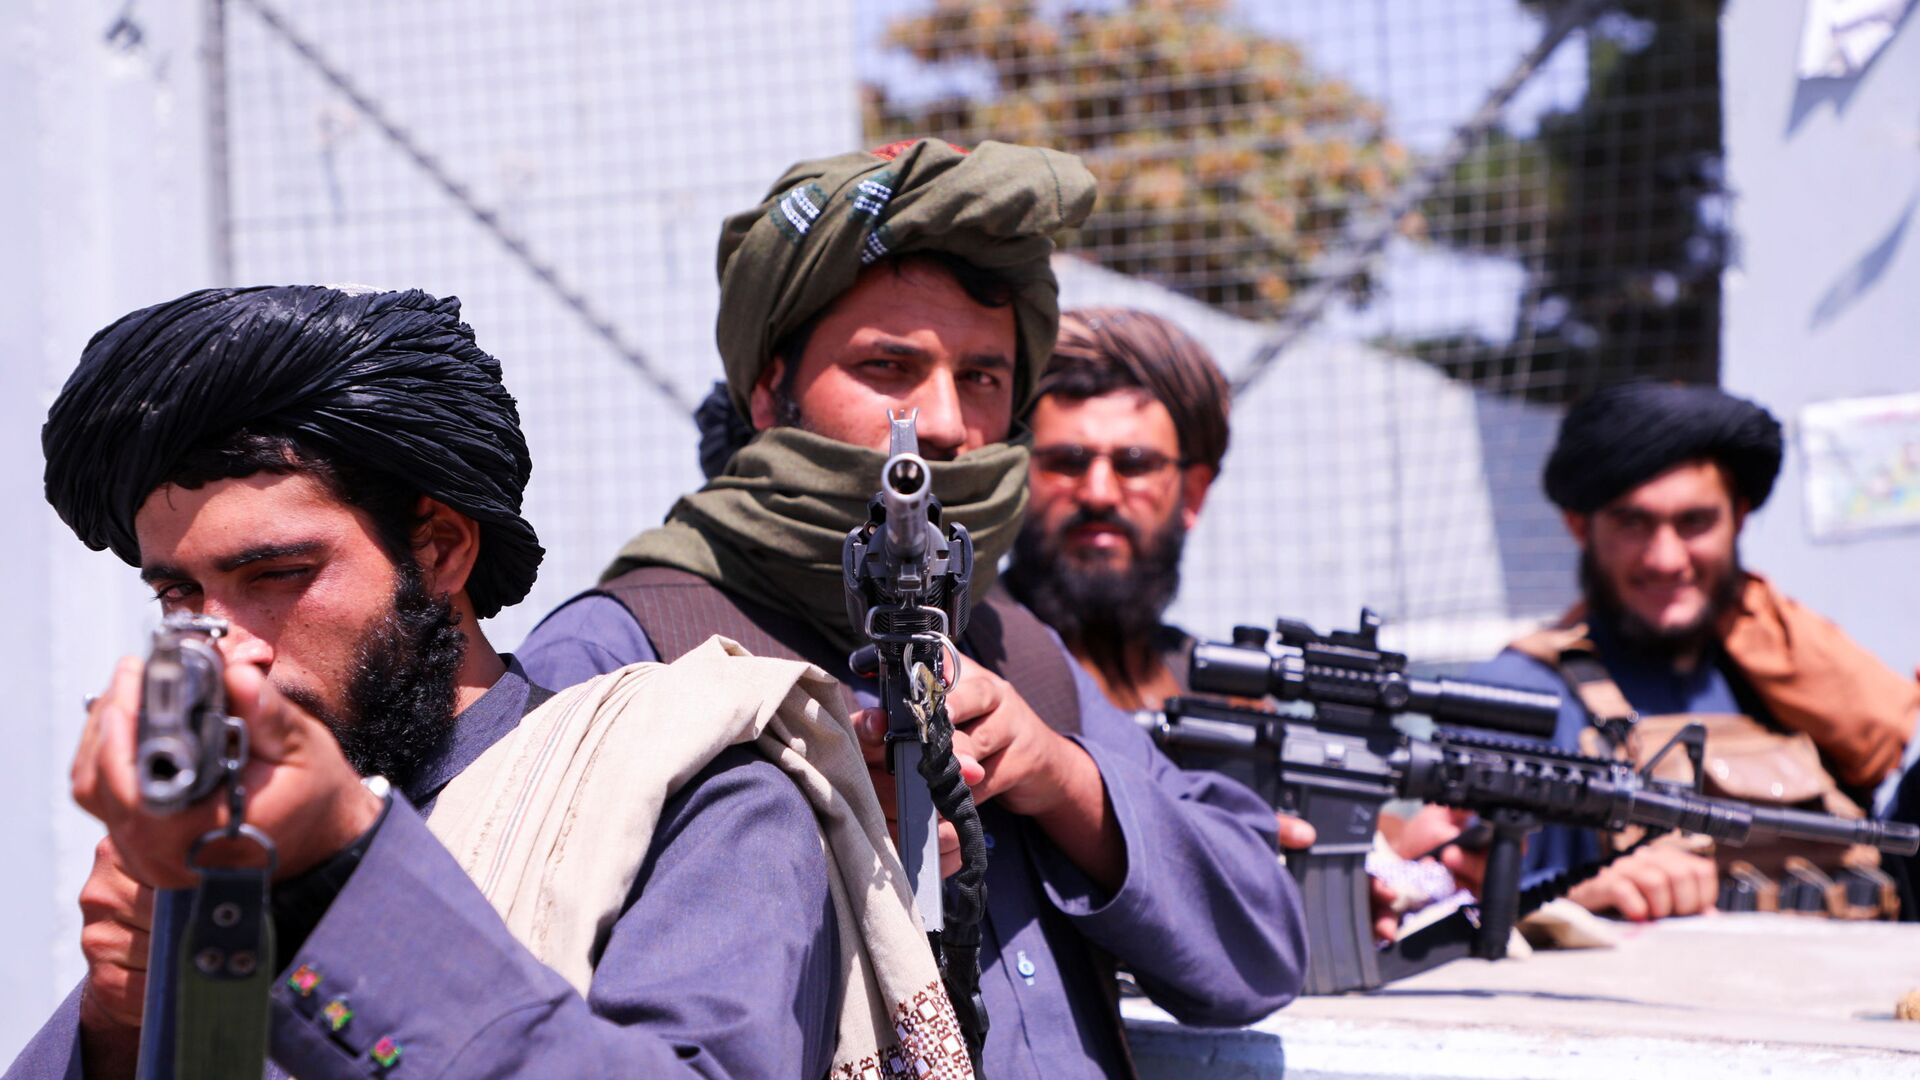 Taliban forces stand guard in front of Hamid Karzai International Airport in Kabul, Afghanistan - Sputnik International, 1920, 07.09.2021